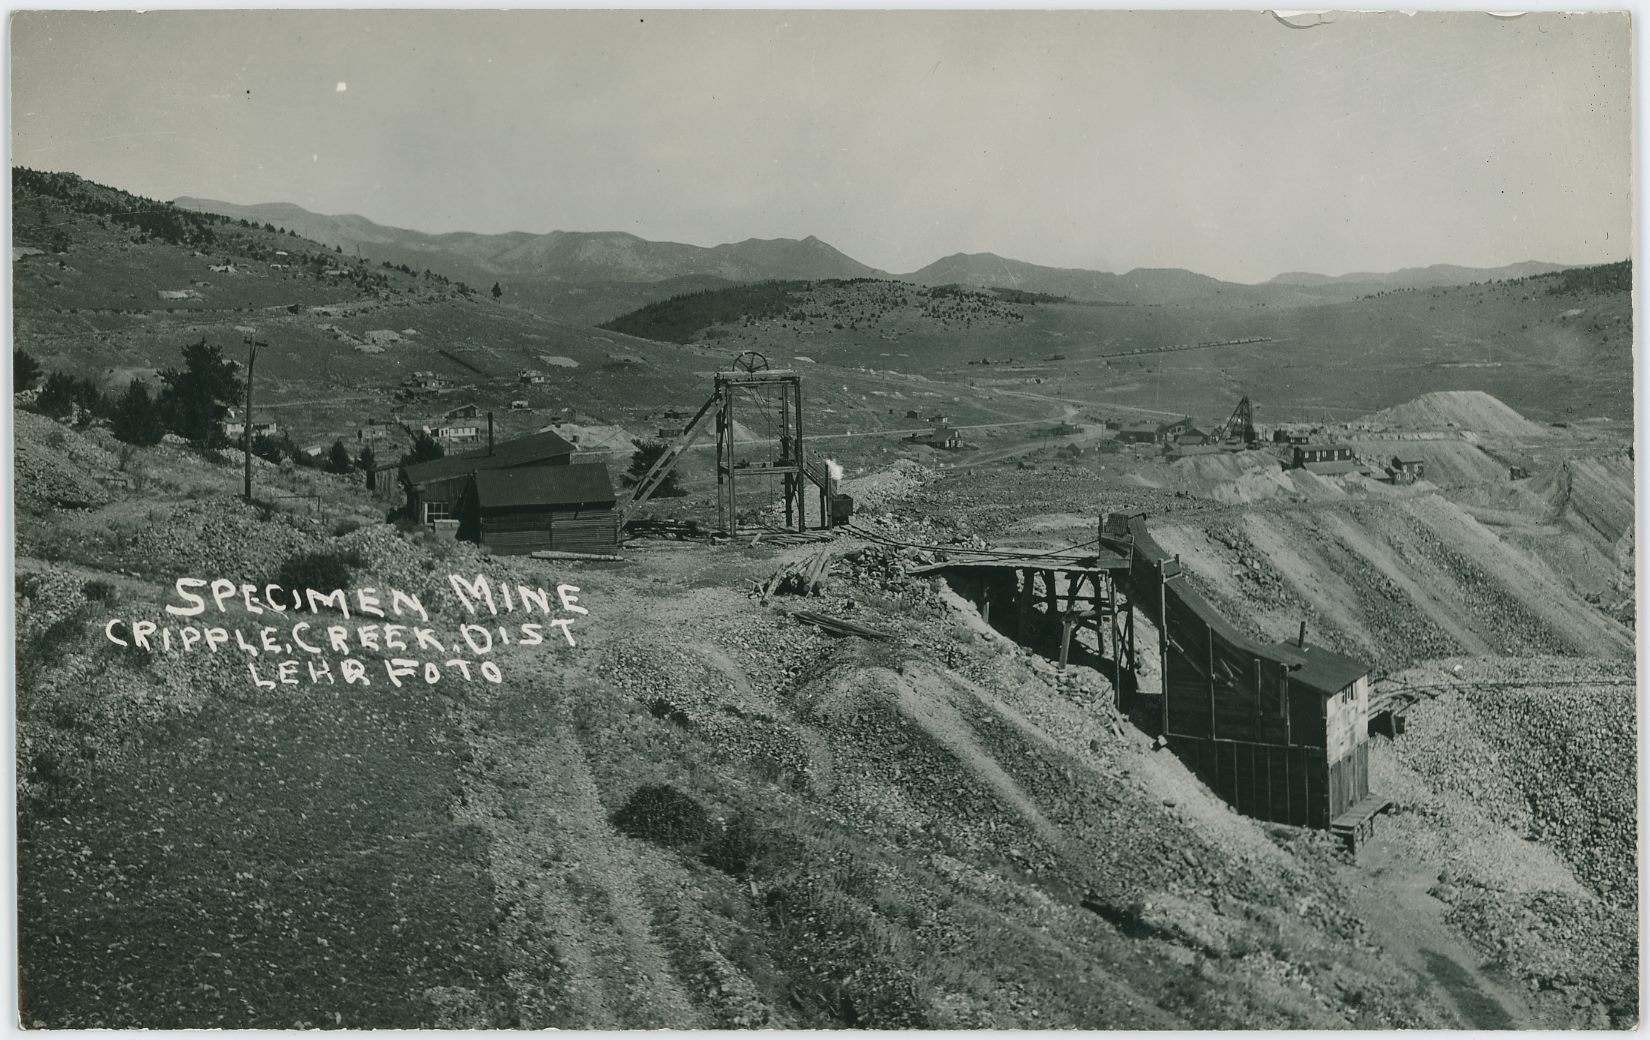 Direction of this view is east, northeast, on Bull Hill, just west of the surface structures of the Specimen Mine operation, with an open Head-Frame and Hoist-house and shed linked to it, and a small Ore-house to the right down the hillside a small bit.    In the distance, up from the orehouse, the surface structures of the Vindicator No. 1 Mine are seen with a large Head-frame and Ore-house down into massive dumps, impossible to tell if it still is linked to a railroad or not in this view. Further on in the distance to the left, a big string of railroad cars say that the Midland Terminal is still in operation, but there is no trace of the High Line Electric Division, as where that should be I only see a road surface – cutting almost the headframe of the Specimen Mine in two so to speak.    Image is not sharp enough to tell if there are any rails left on the old Golden Circle tracks seen climbing Bull Hill, or is it Bull Cliff, about 1/4 down from top and about 1/4 in from left-hand side, but I do think the standard gauge M.T. tracks are there still when this photo was taken by Lehr many years ago.